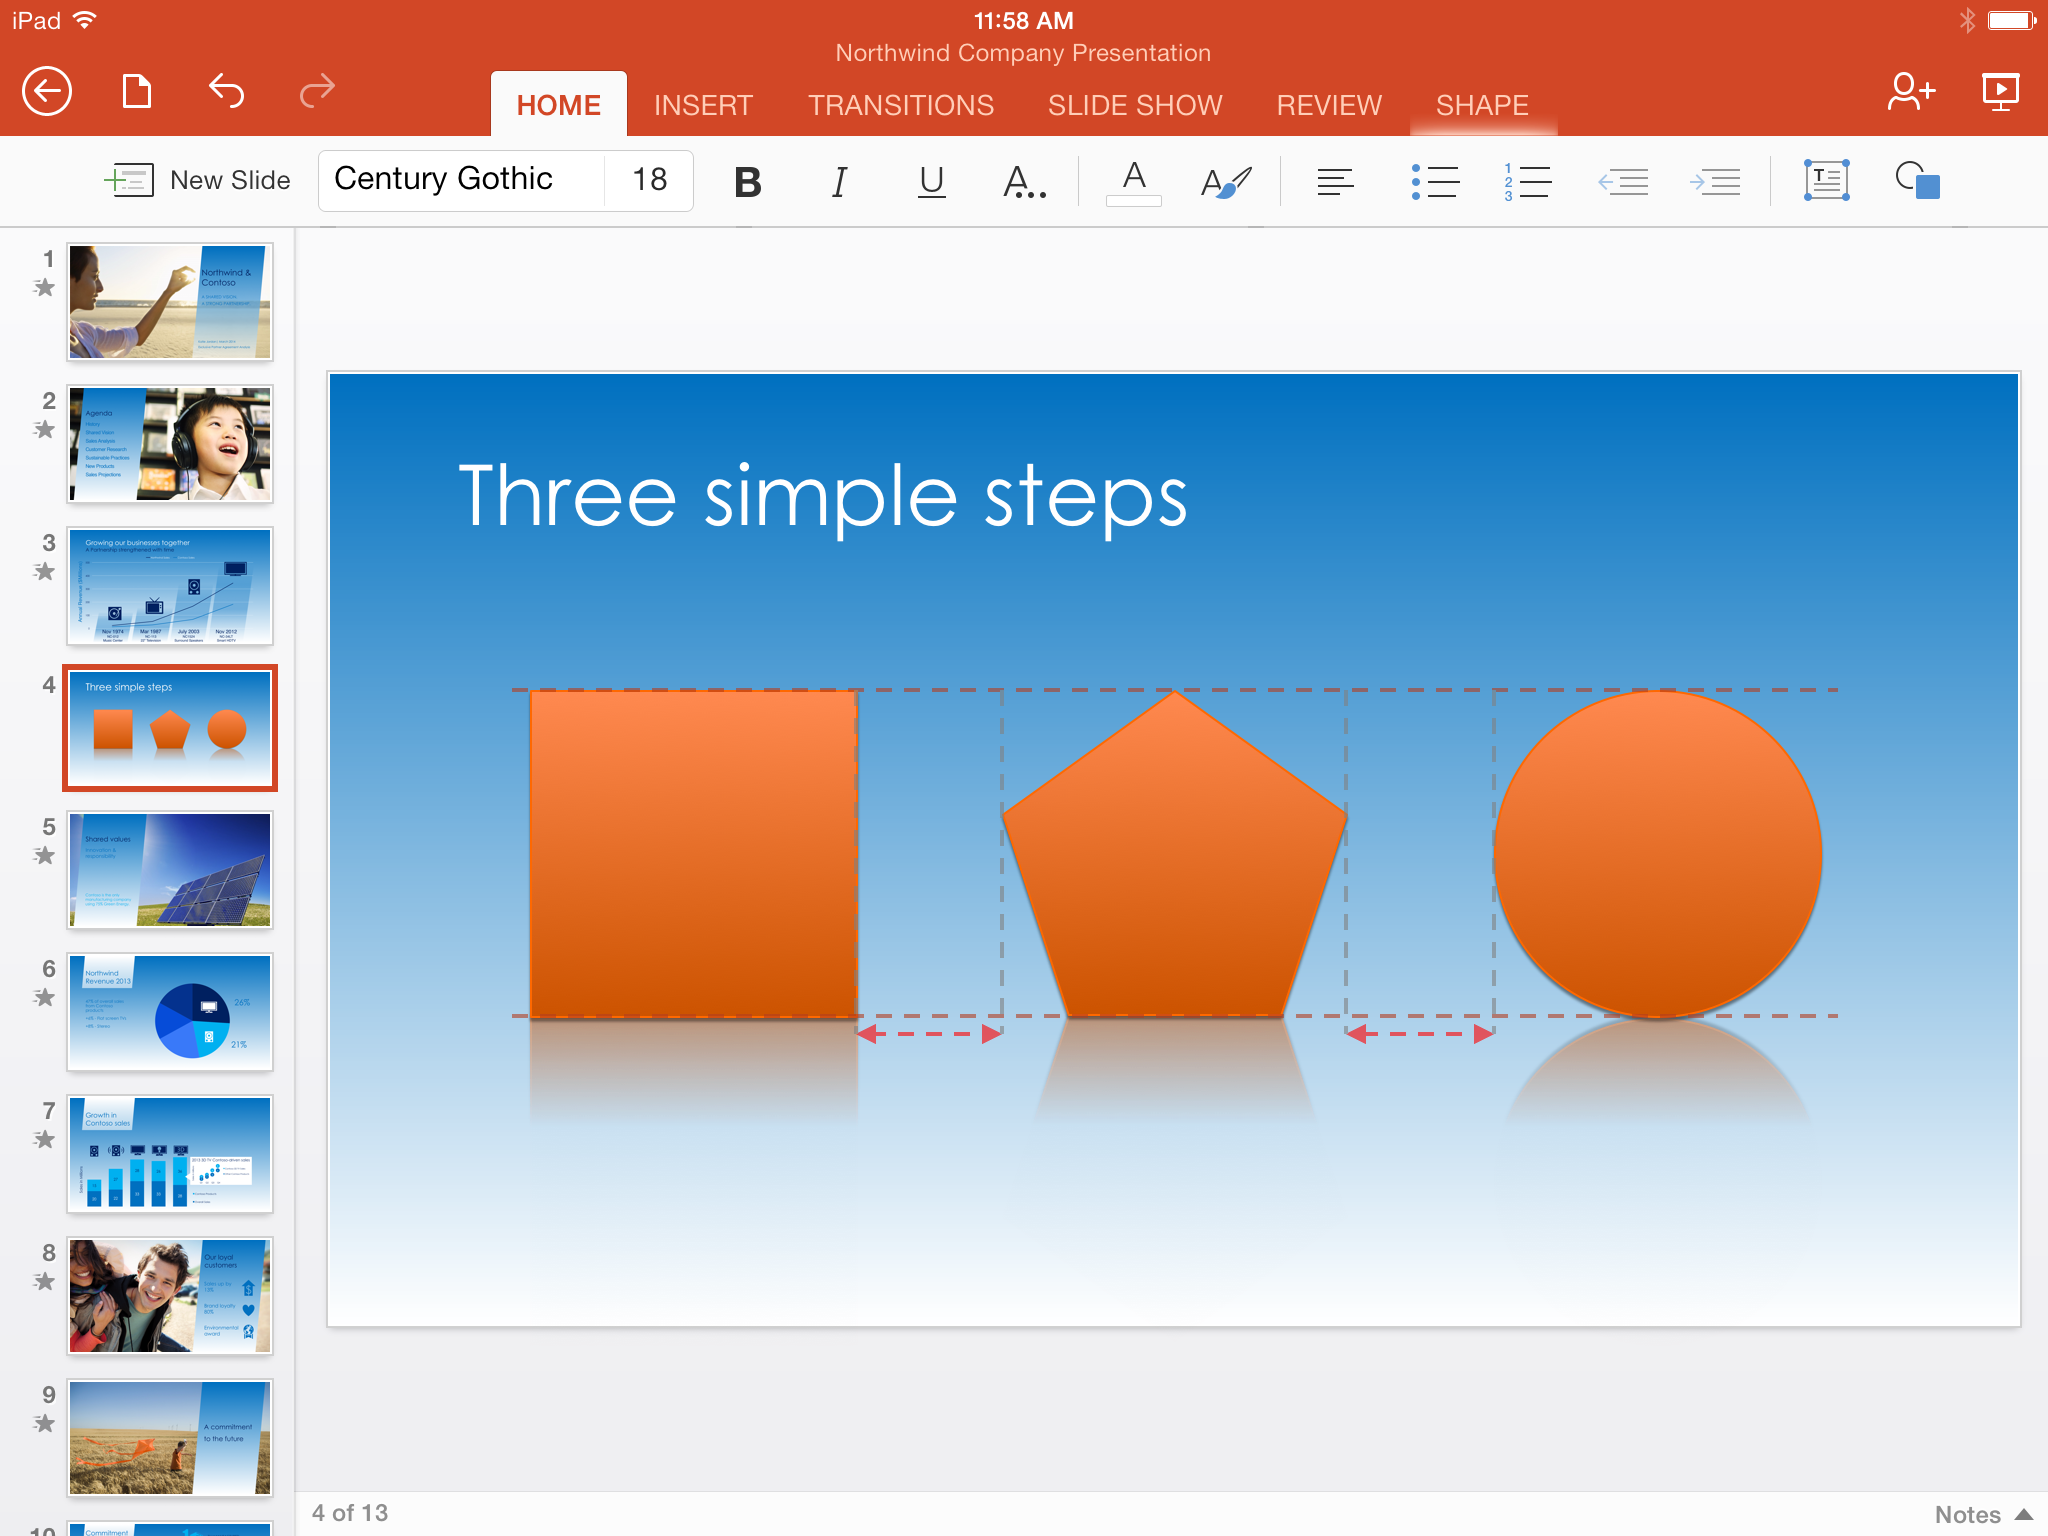 PowerPoint for iPad SmartGuides Microsoft updates Office for iPad with AirPrint support, AutoFit in Excel, and SmartGuides in PowerPoint